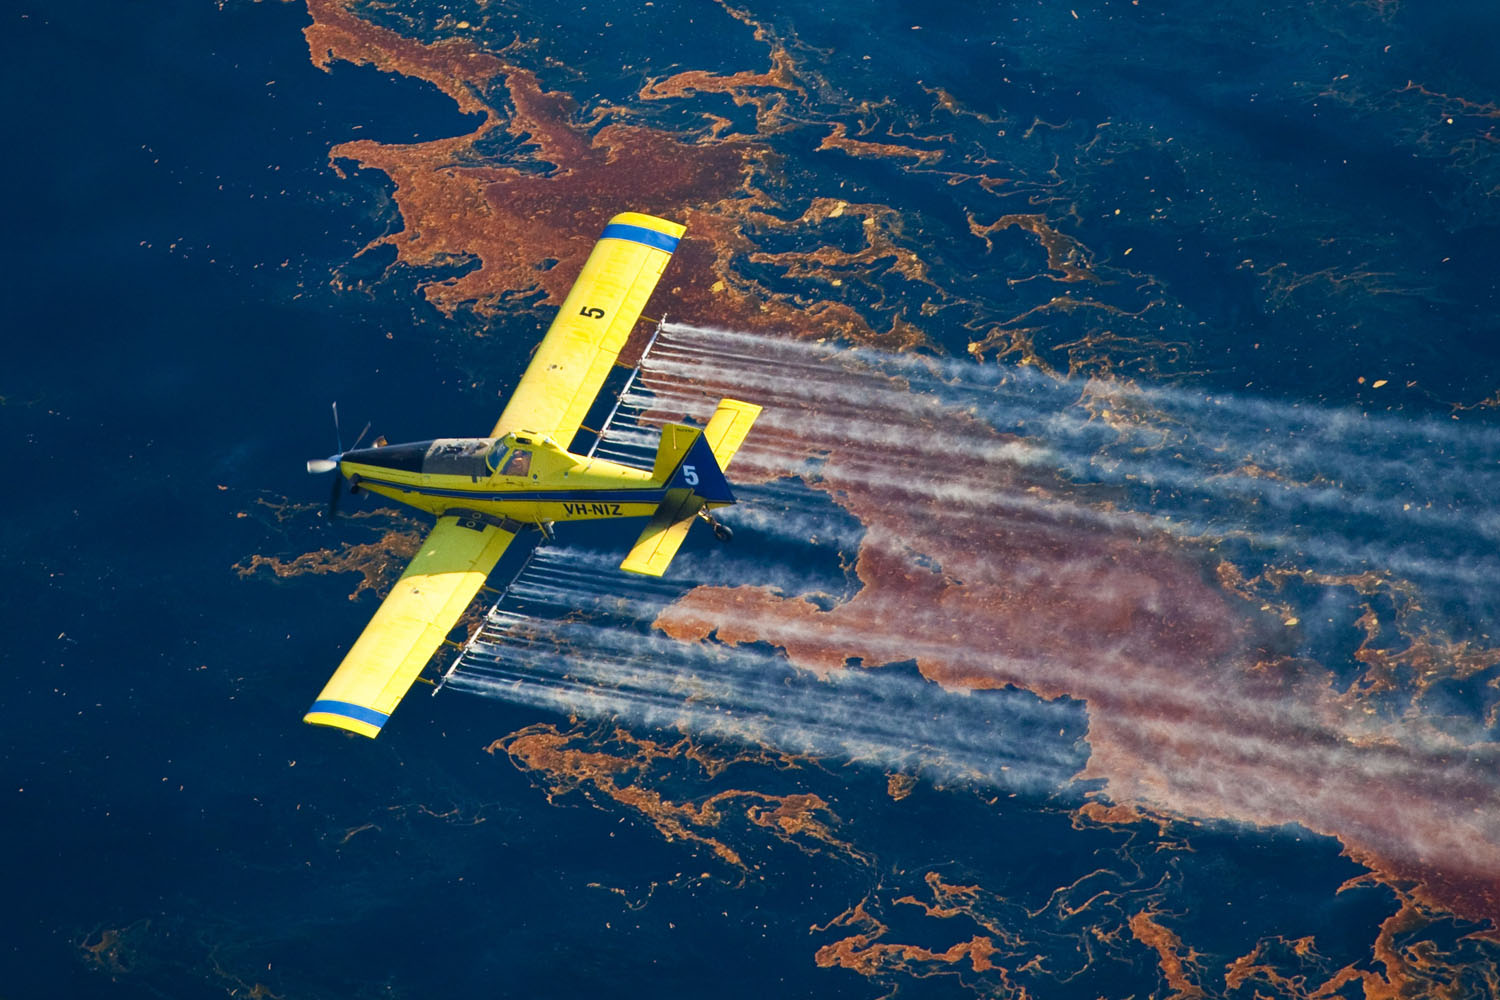 Air Tractor 802 flying over oil spill